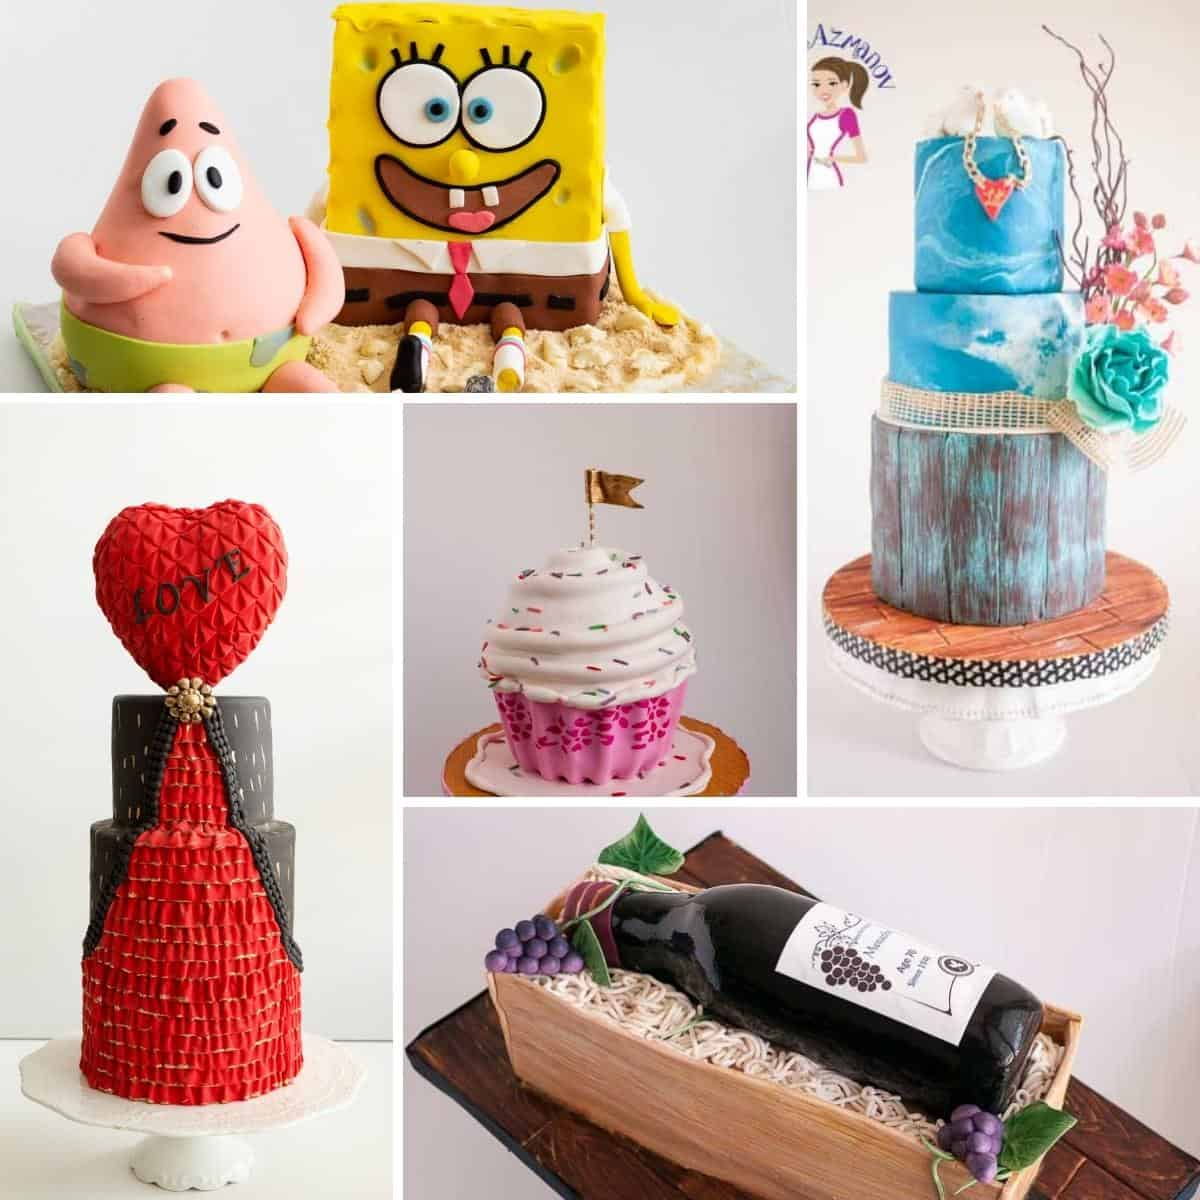 A collage of decorated cakes.